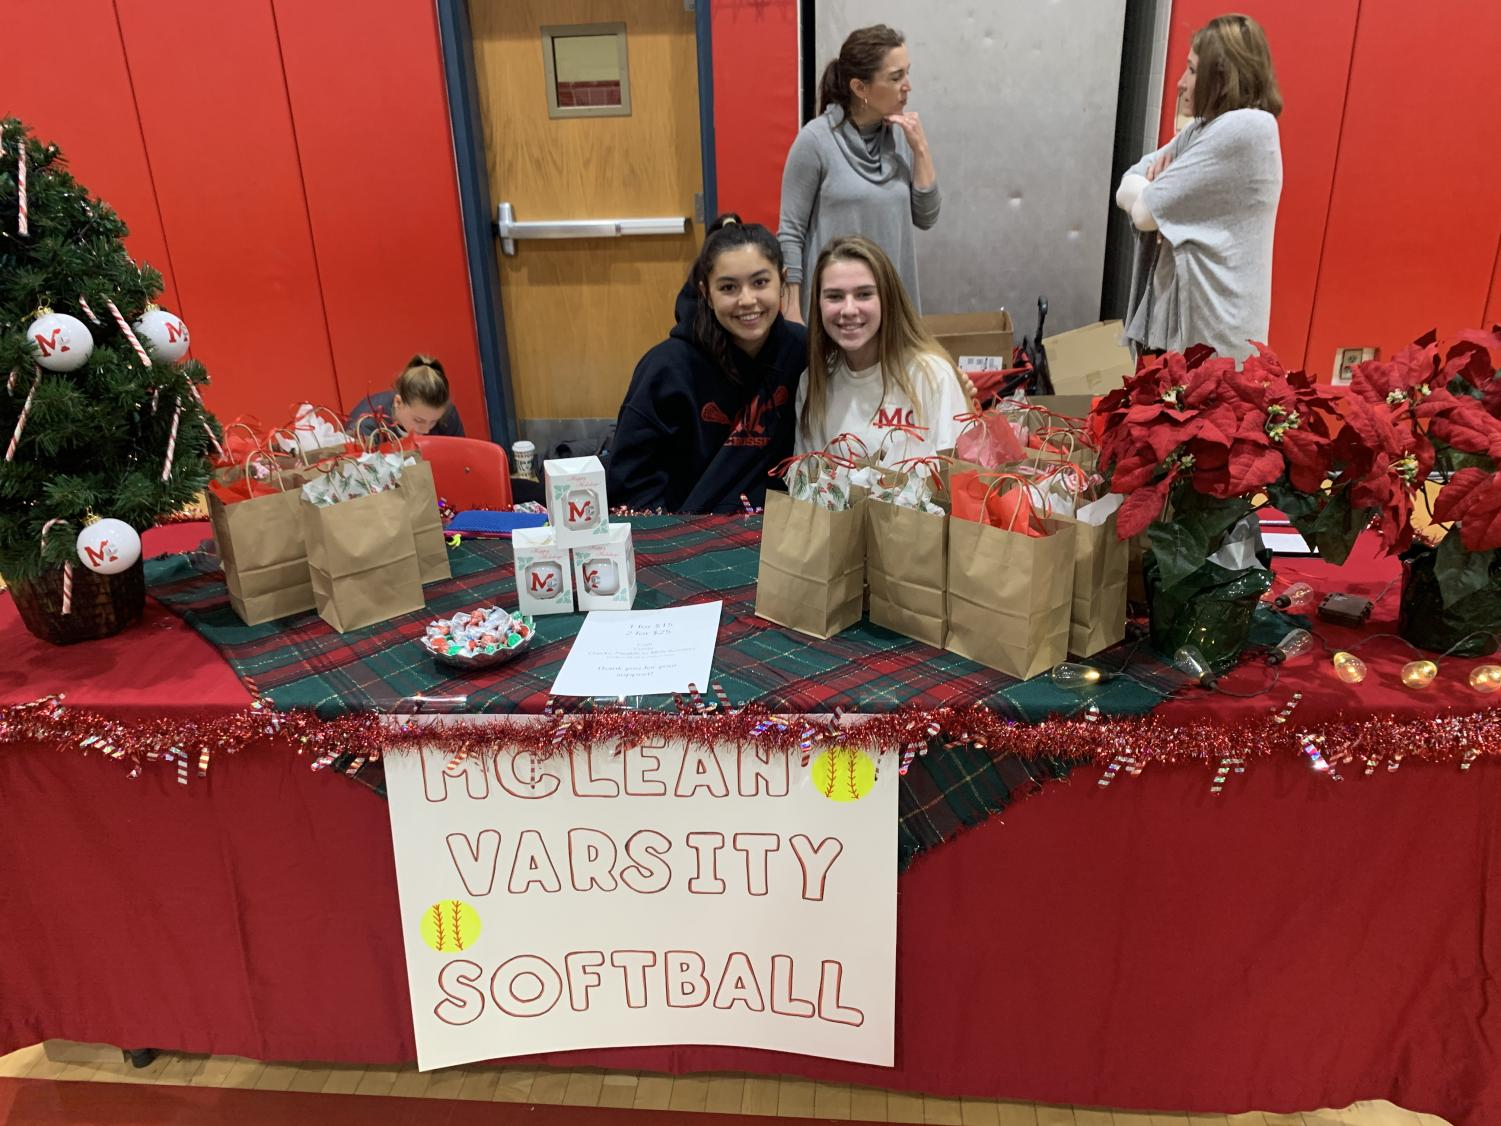 HOLIDAY HOME RUN —Girls varsity softball has spirit even in the off season. Along with selling beautiful gifts, they decorated their booths in celebration of the Christmas spirit.